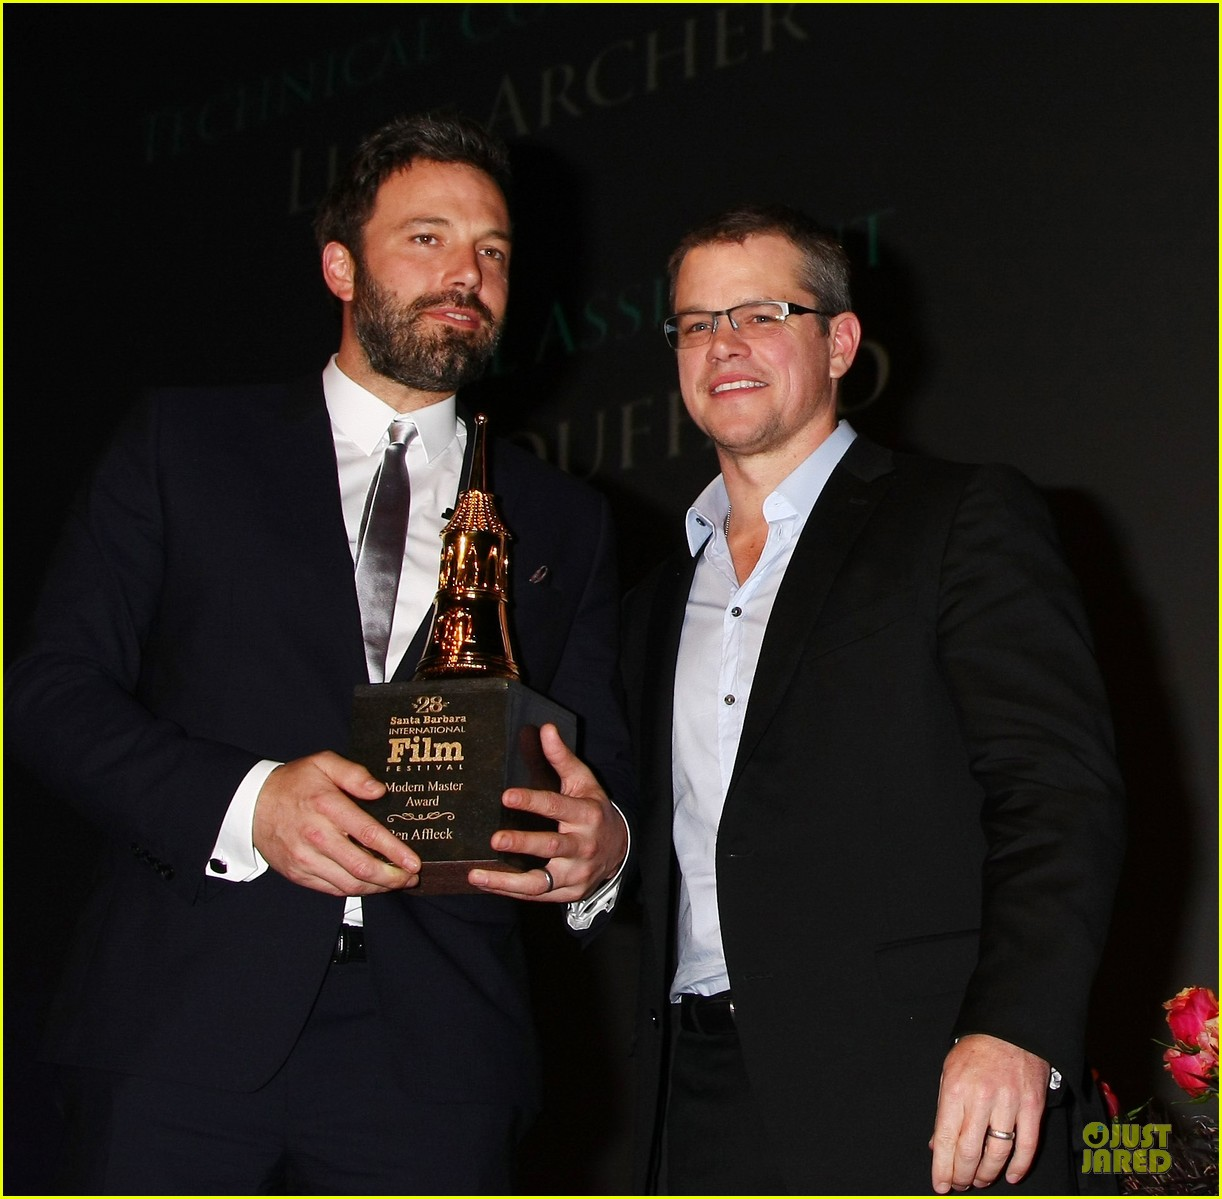 ben affleck santa barbara international film festival modern master award recipient 03